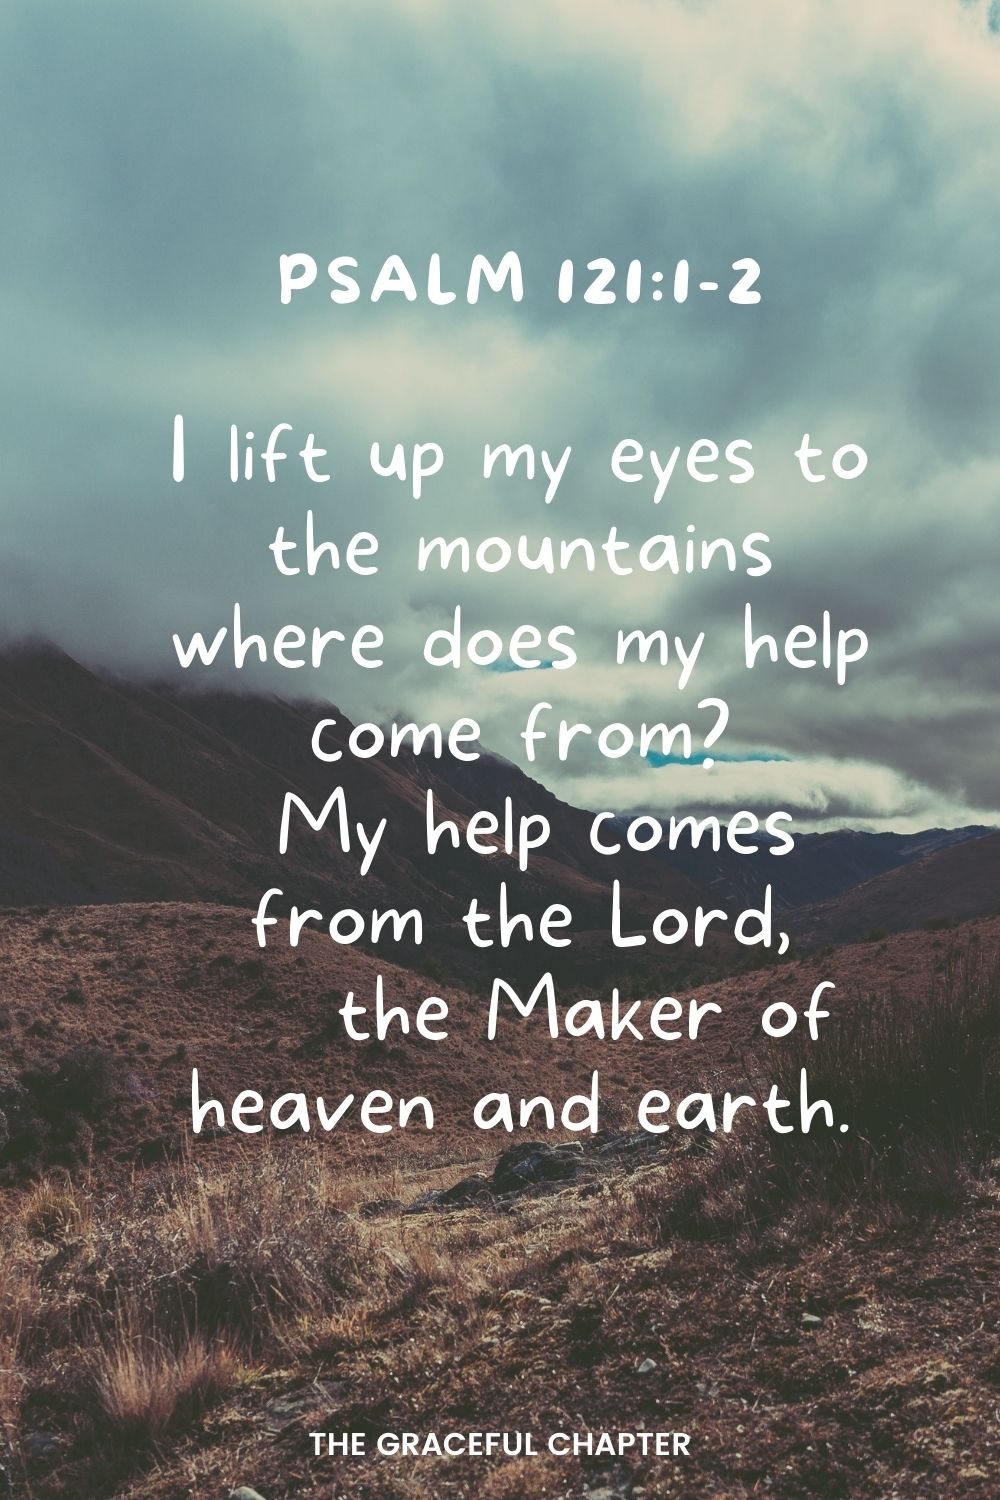 I lift up my eyes to the mountains where does my help come from? My help comes from the Lord, the Maker of heaven and earth. Psalm 121:1-2